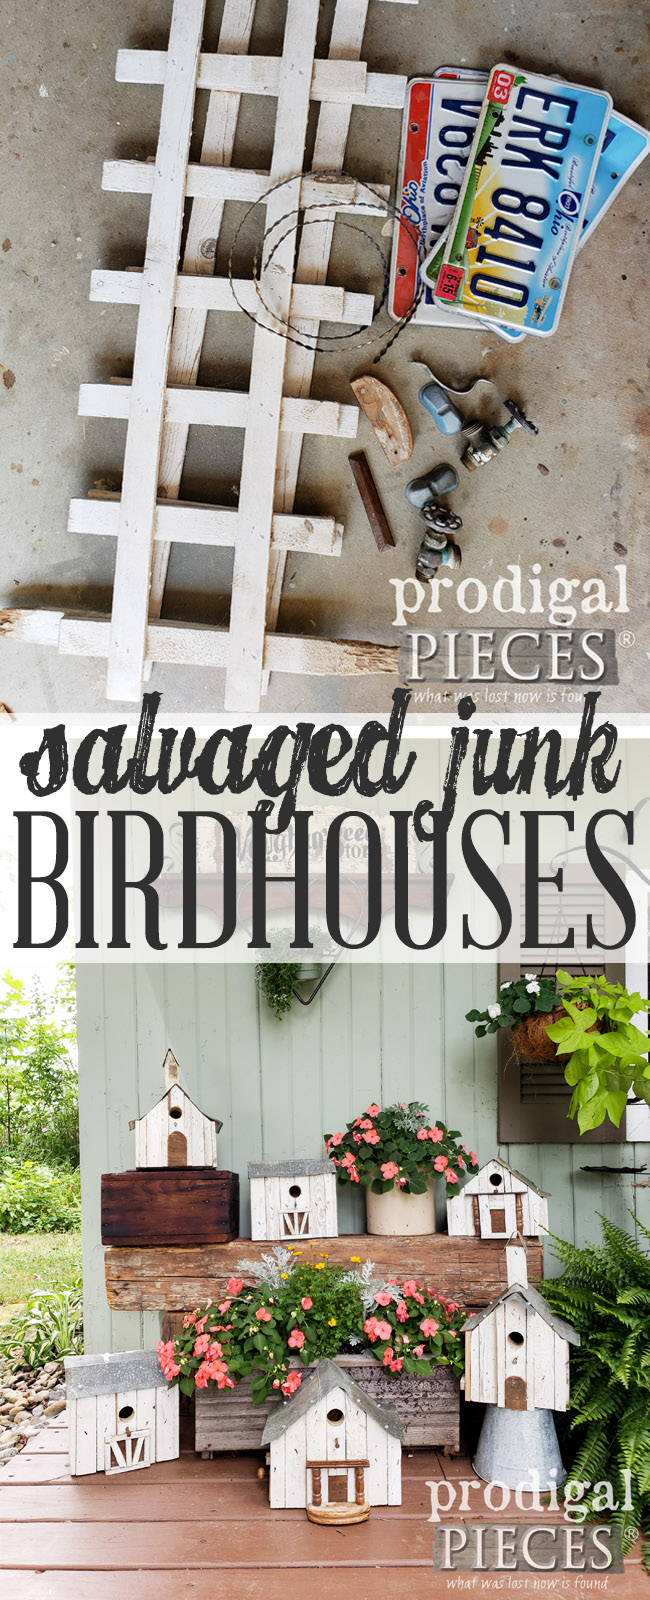 Get creative and build these salvaged junk birdhouses from what others deem trash. I call it #trashure. Full DIY details at Prodigal Pieces | prodigalpieces.com #prodigalpieces #handmade #diy #homedecor